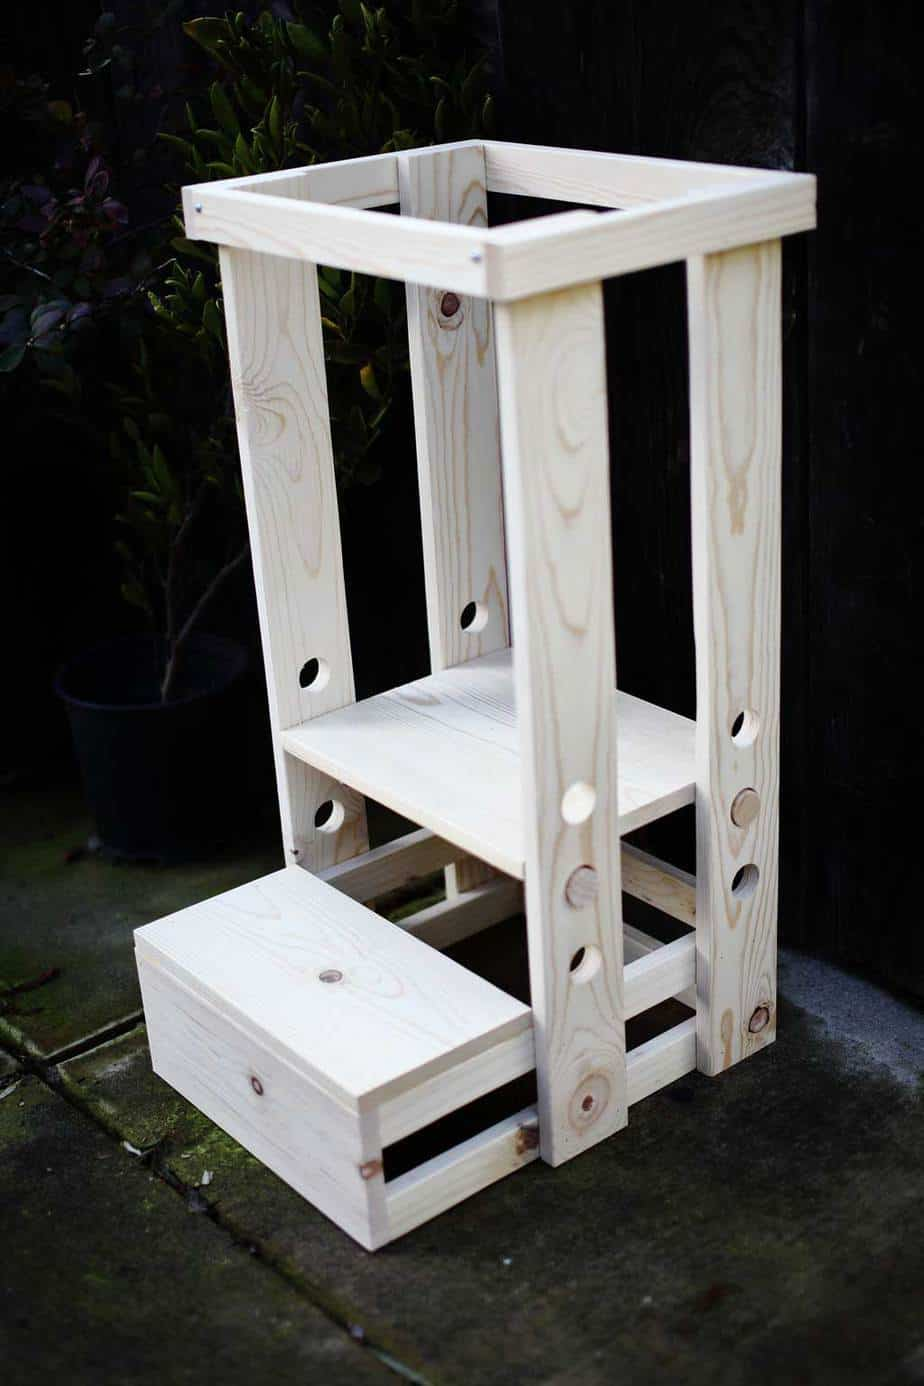 How To Build A Diy Toddler Step Stool With Guard Rail Thediyplan